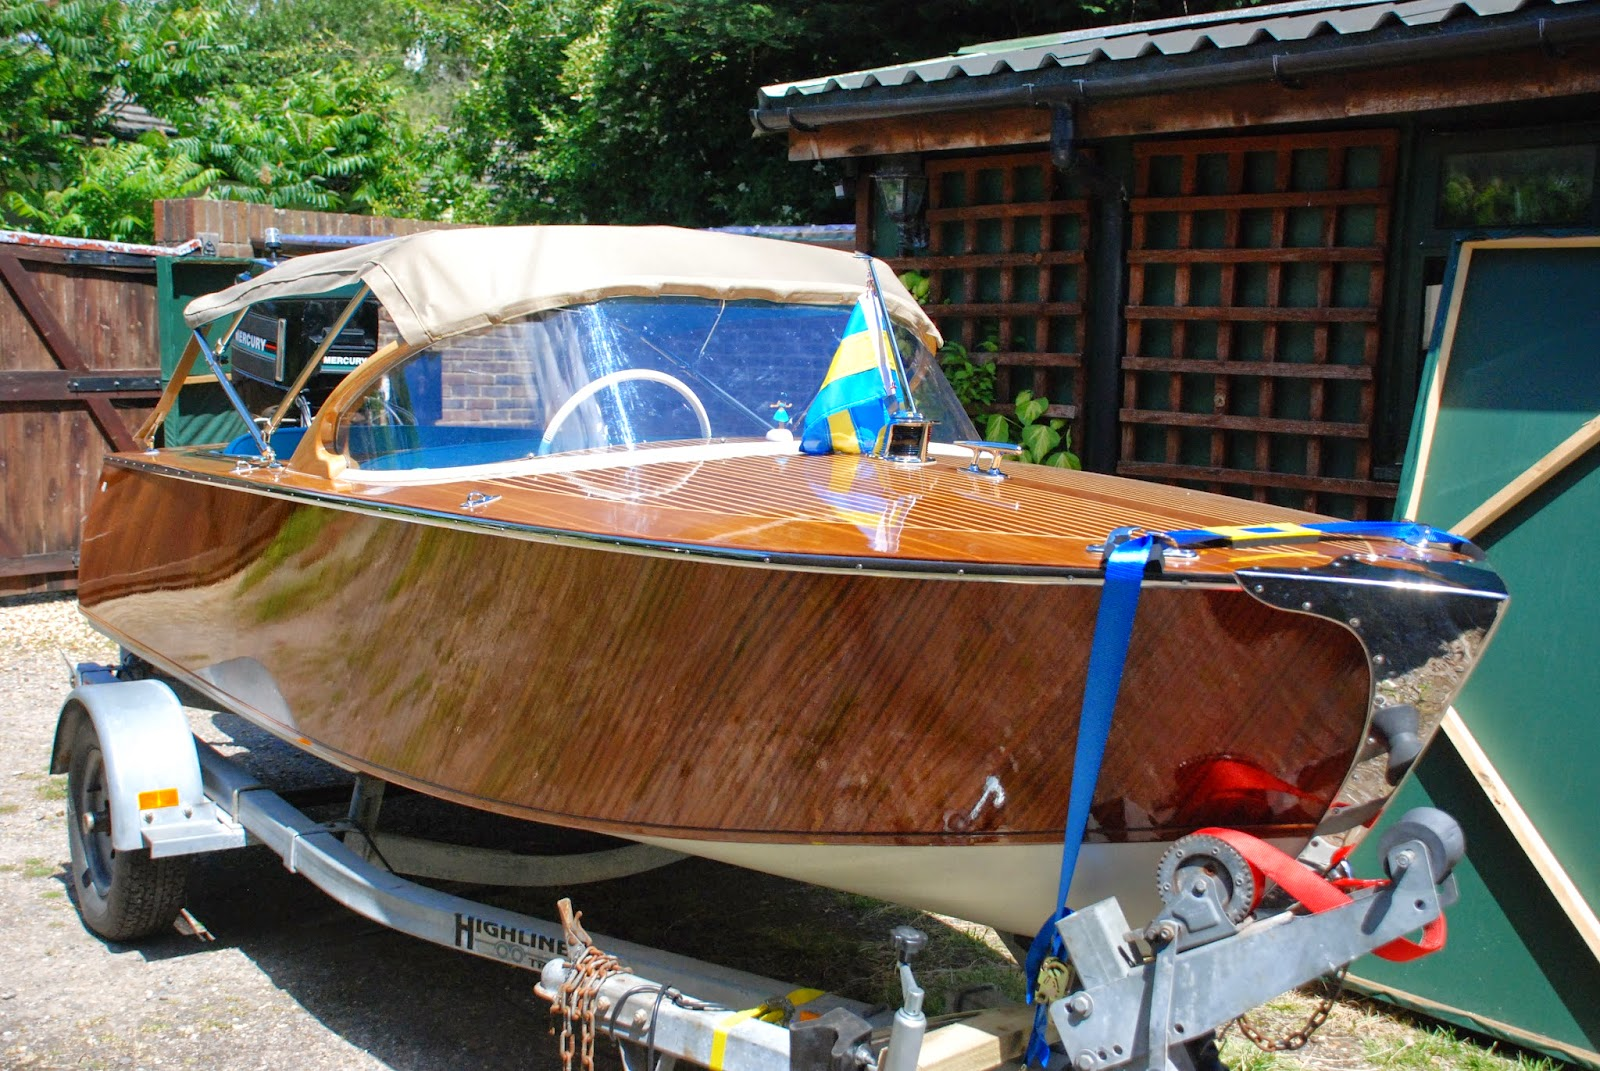 Boat canopy & my wooden speed boat build: Boat canopy